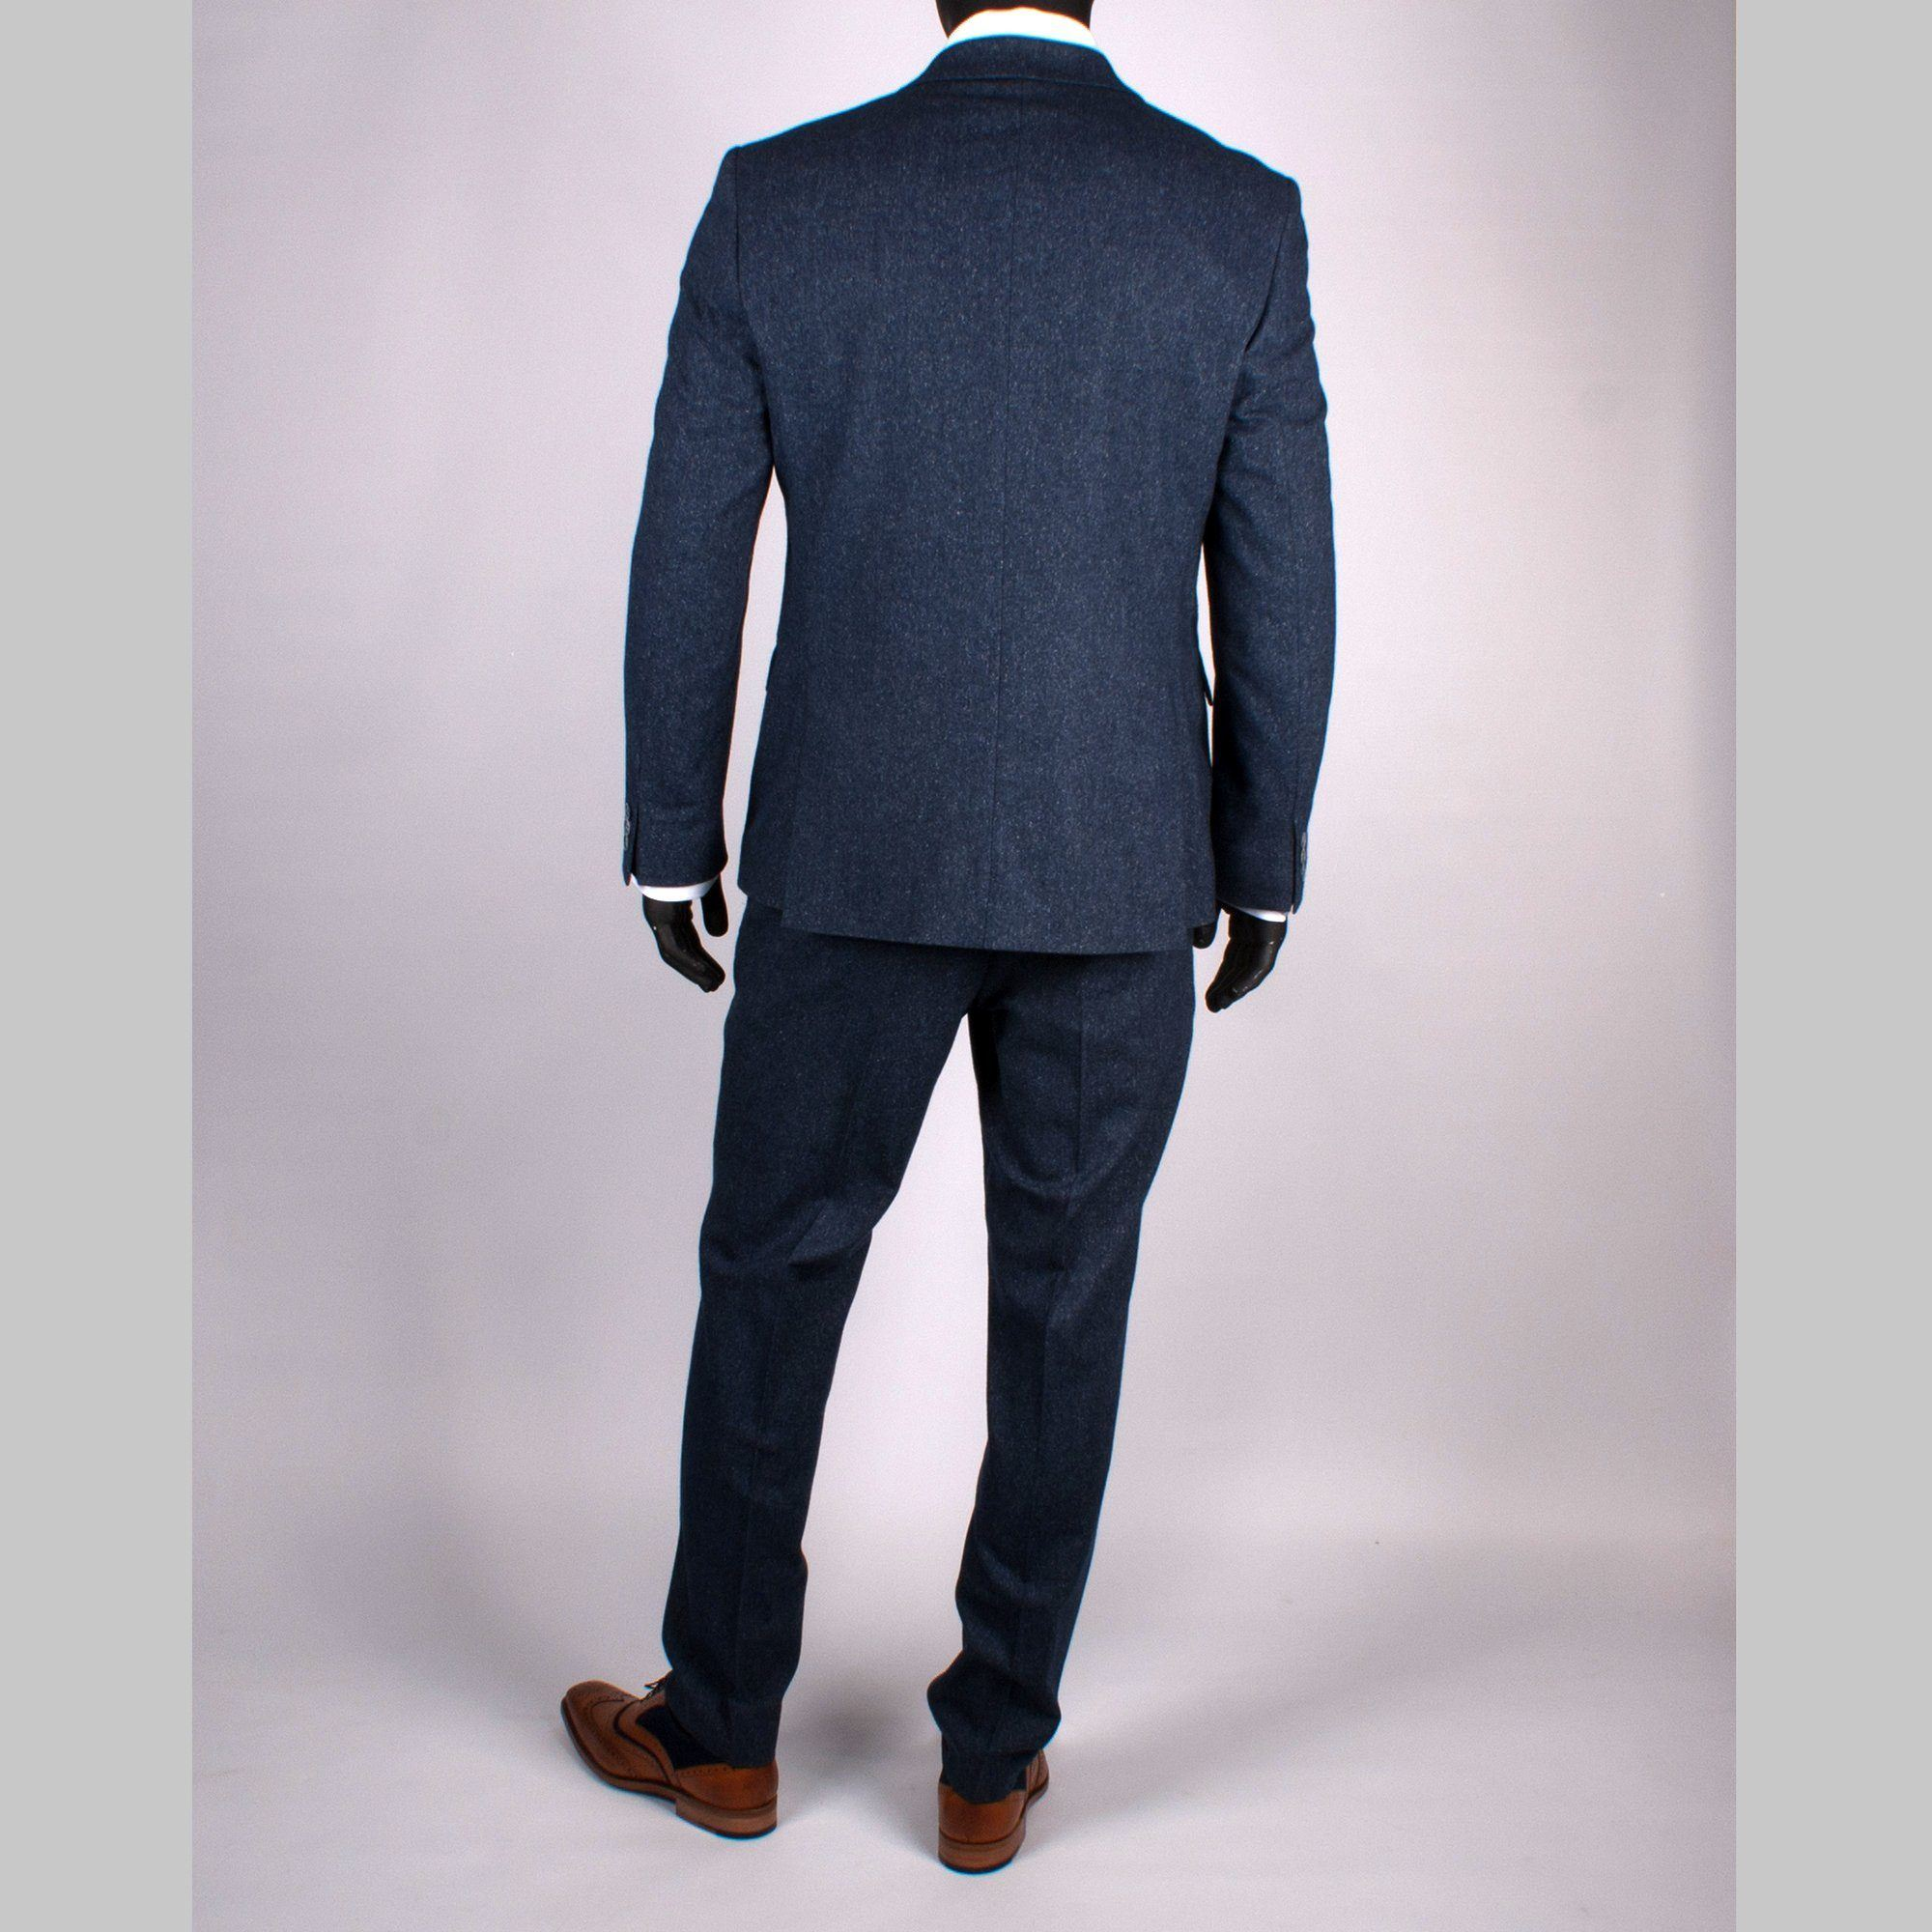 Wool/Silk Tweed Suit Trouser - Leonard Silver